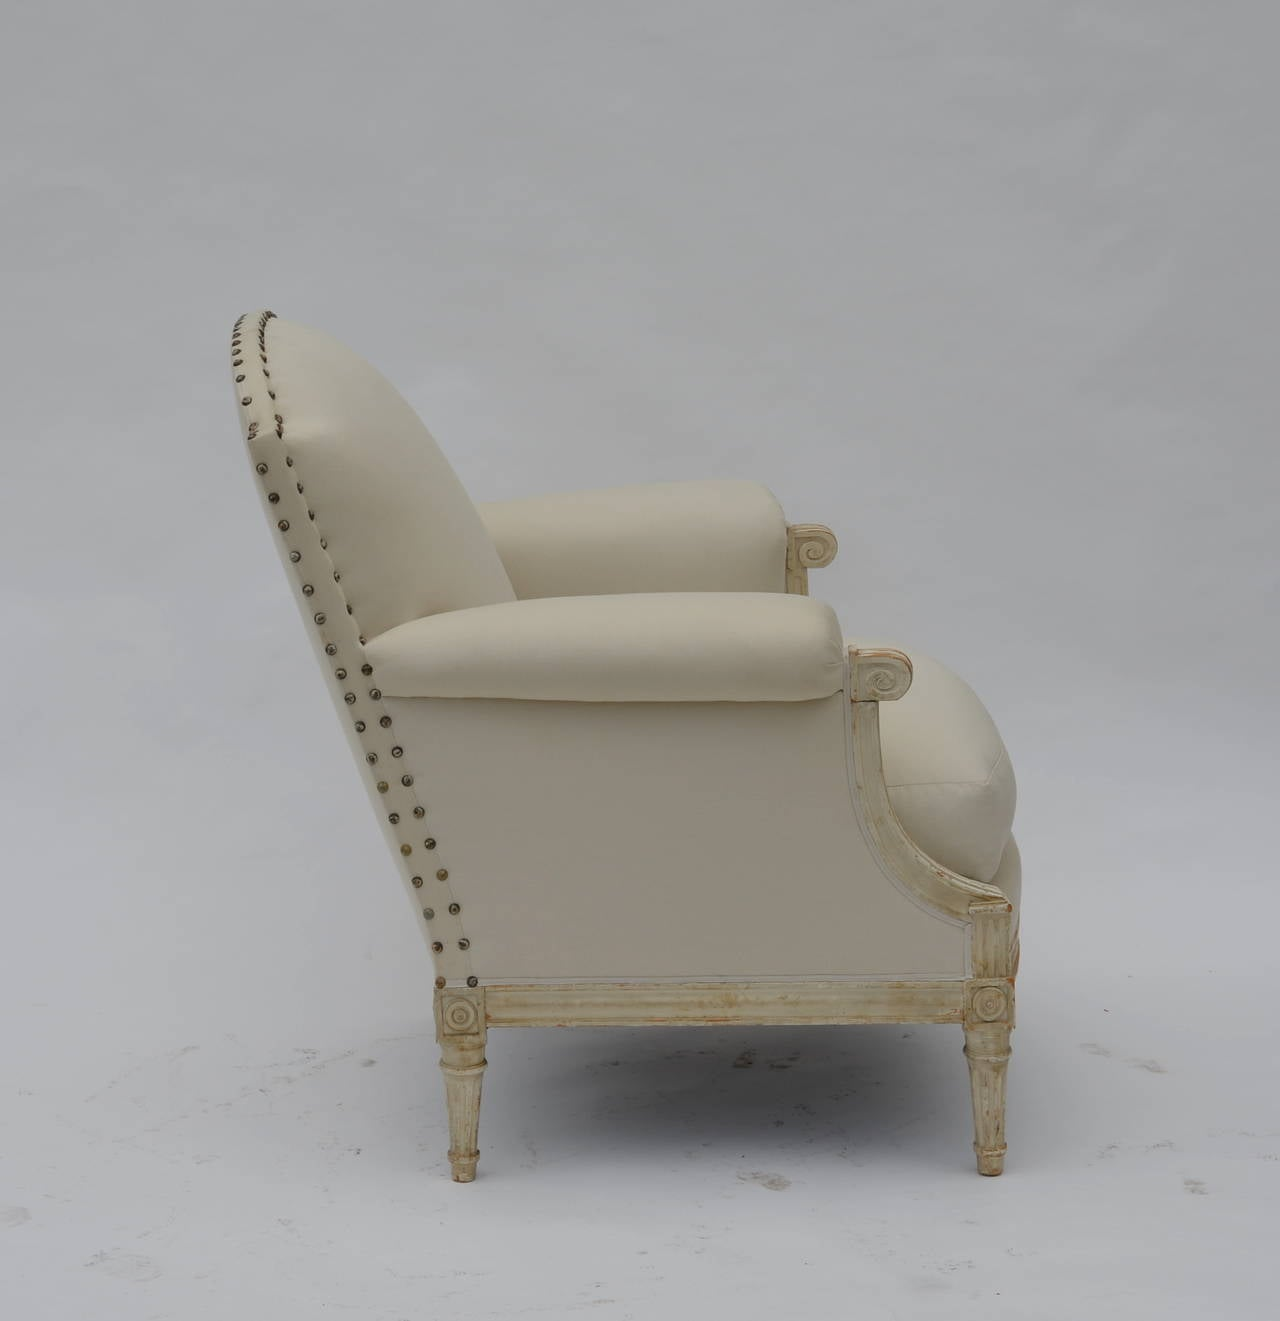 Pair of Exceptional Louis XVI Style Bergeres by Maison Jansen 4